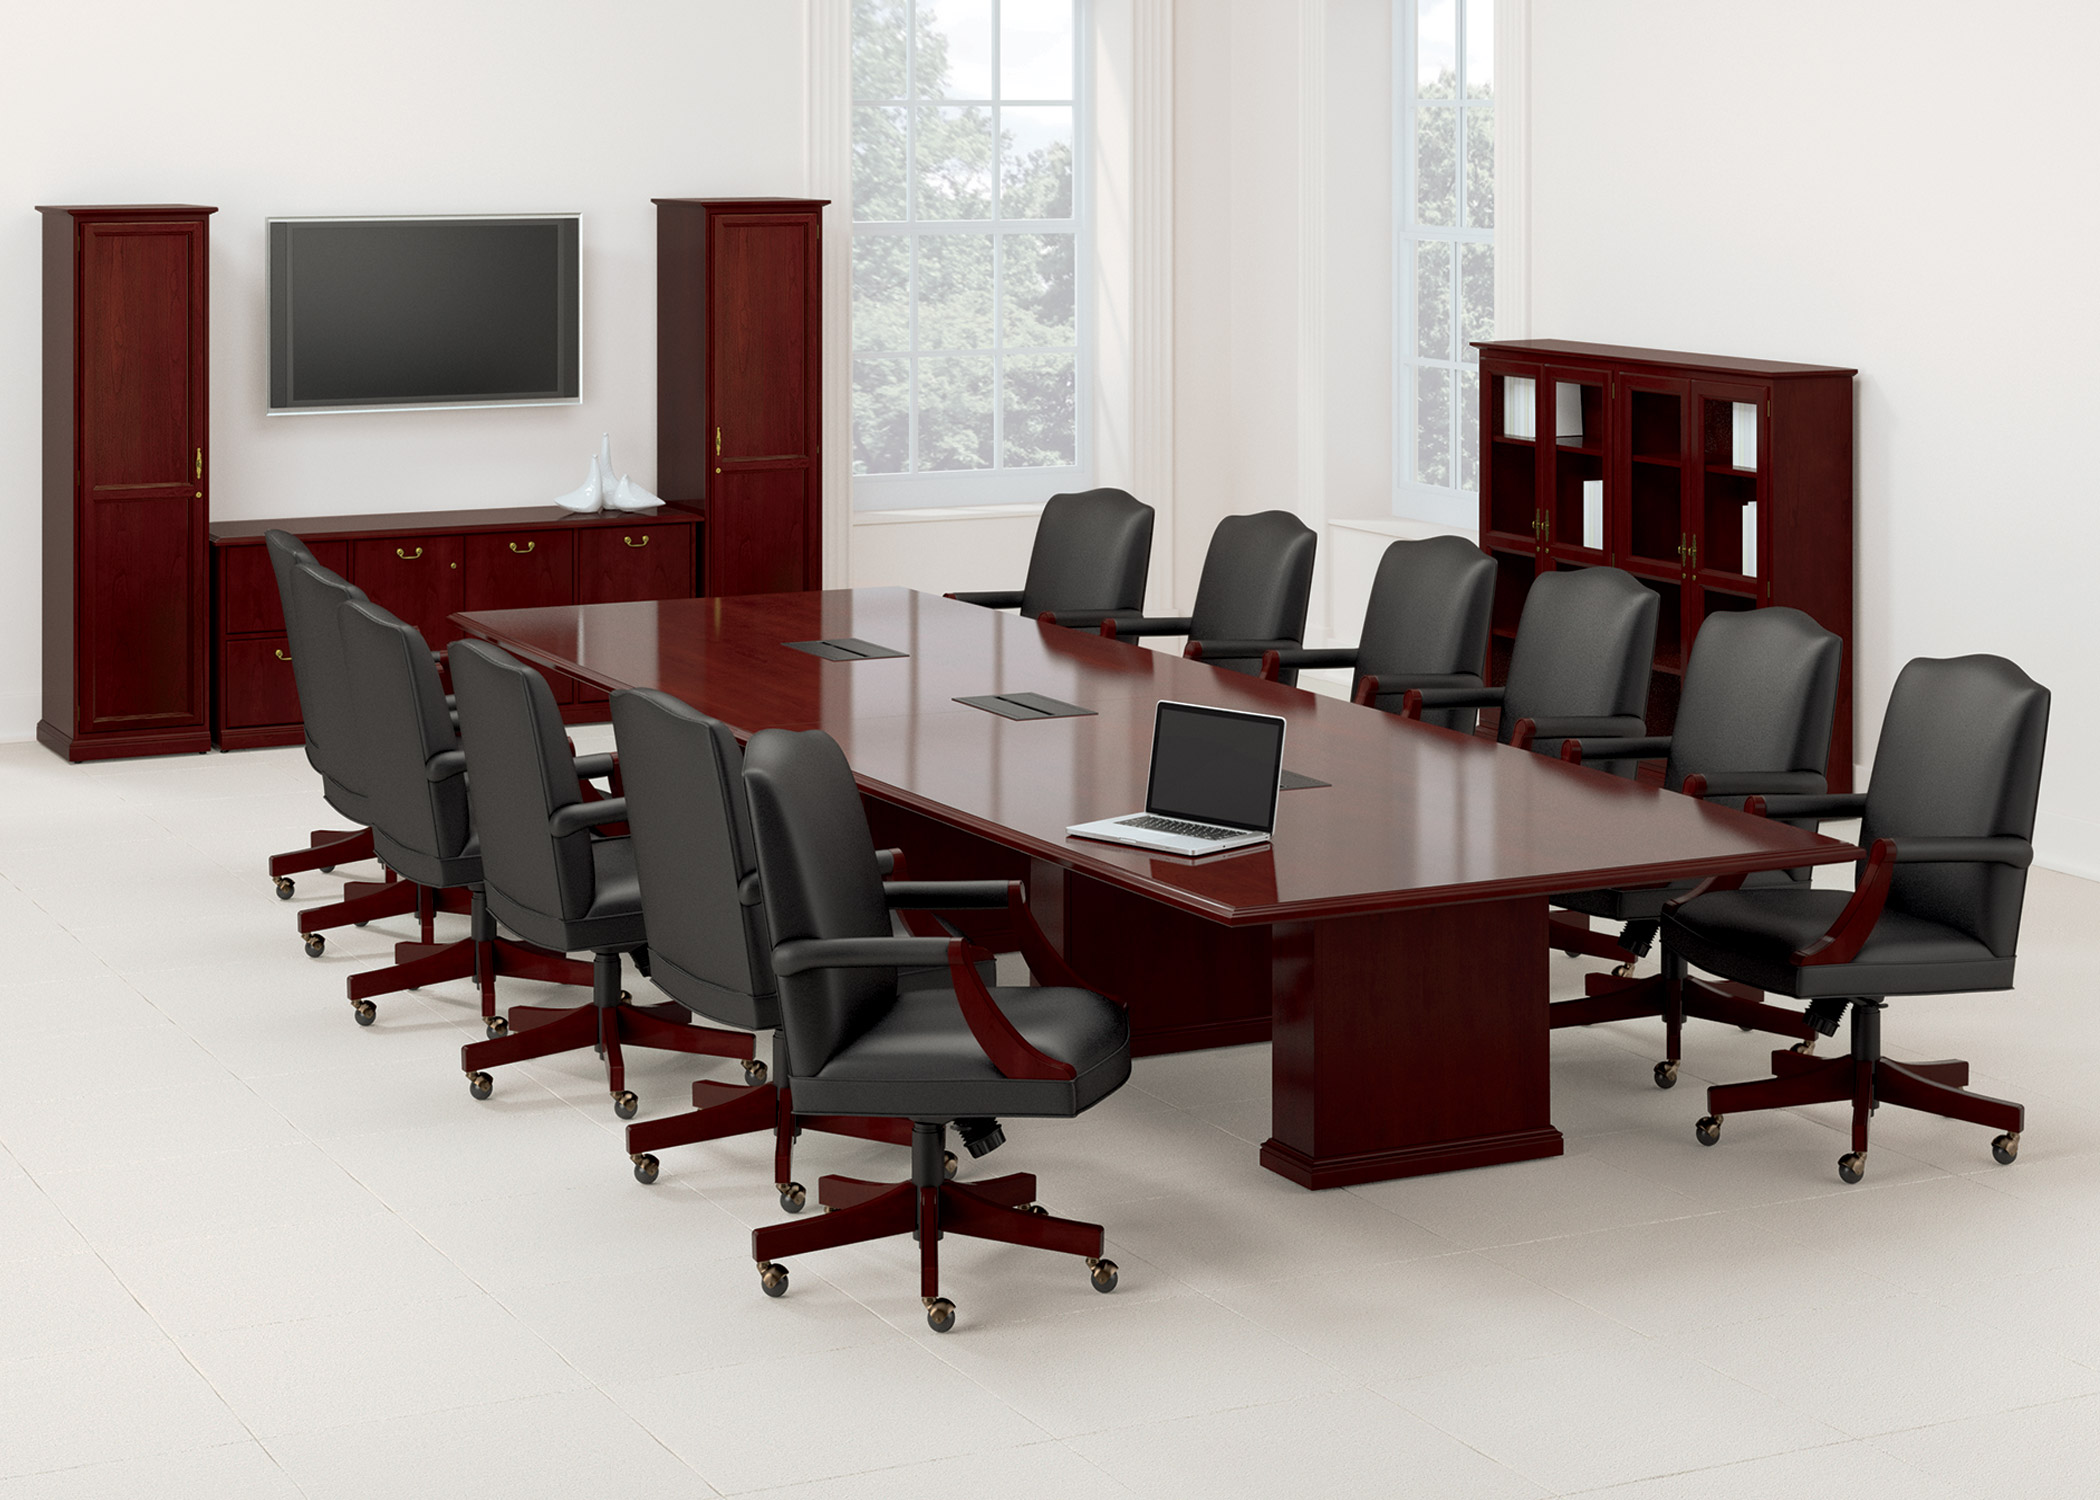 Conference Room Tables Styles To Choose From Ubiq - Conference room table mats